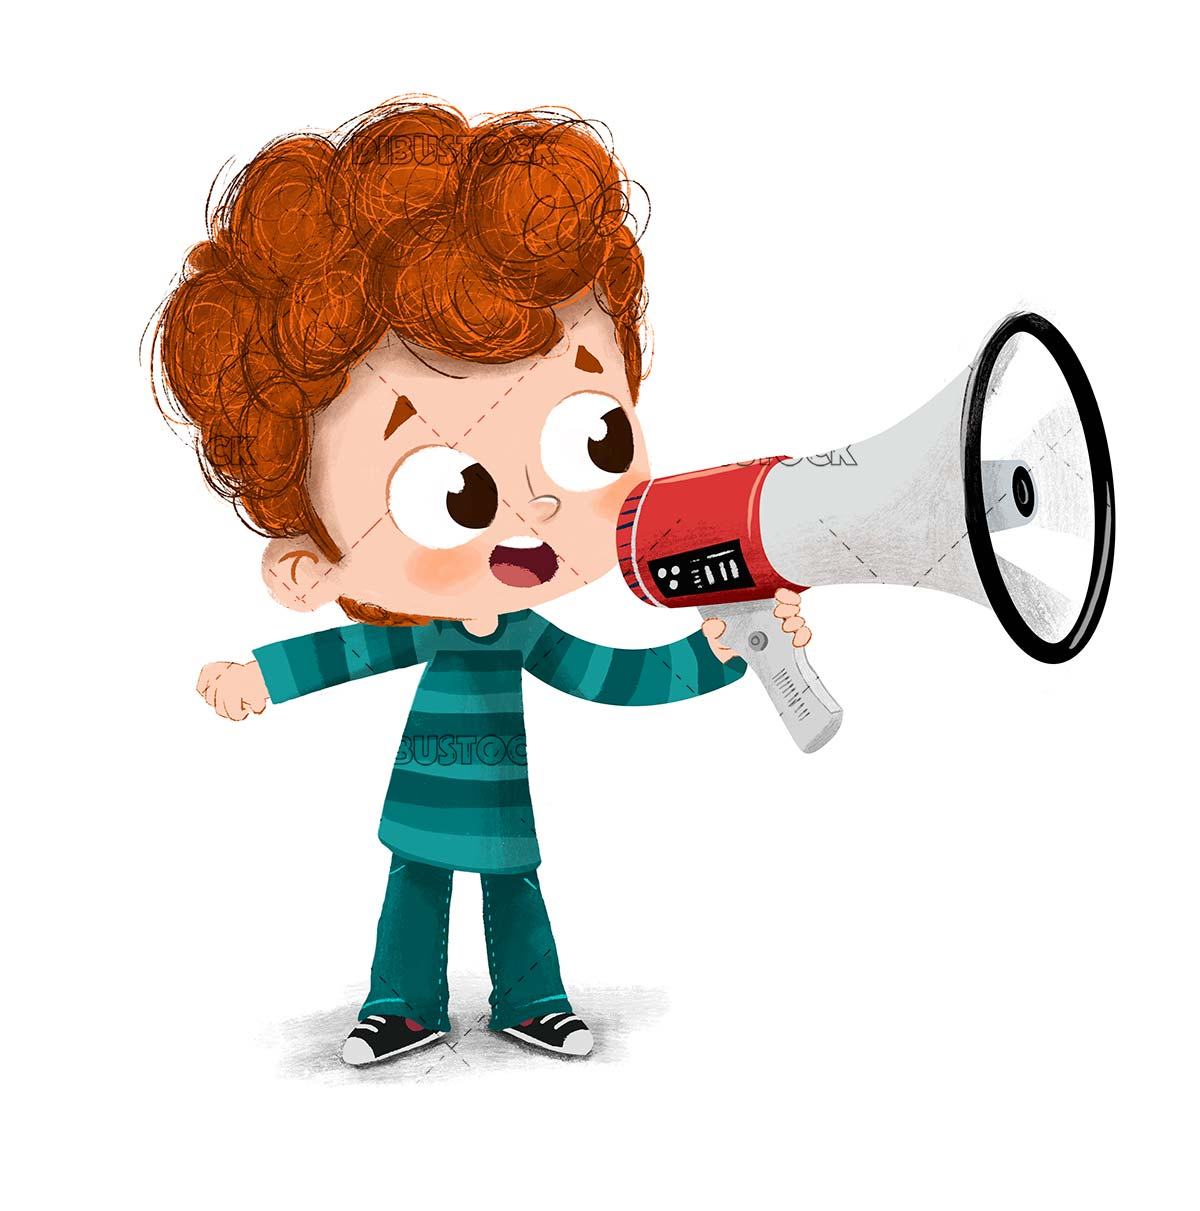 Speaking to the public with a megaphone